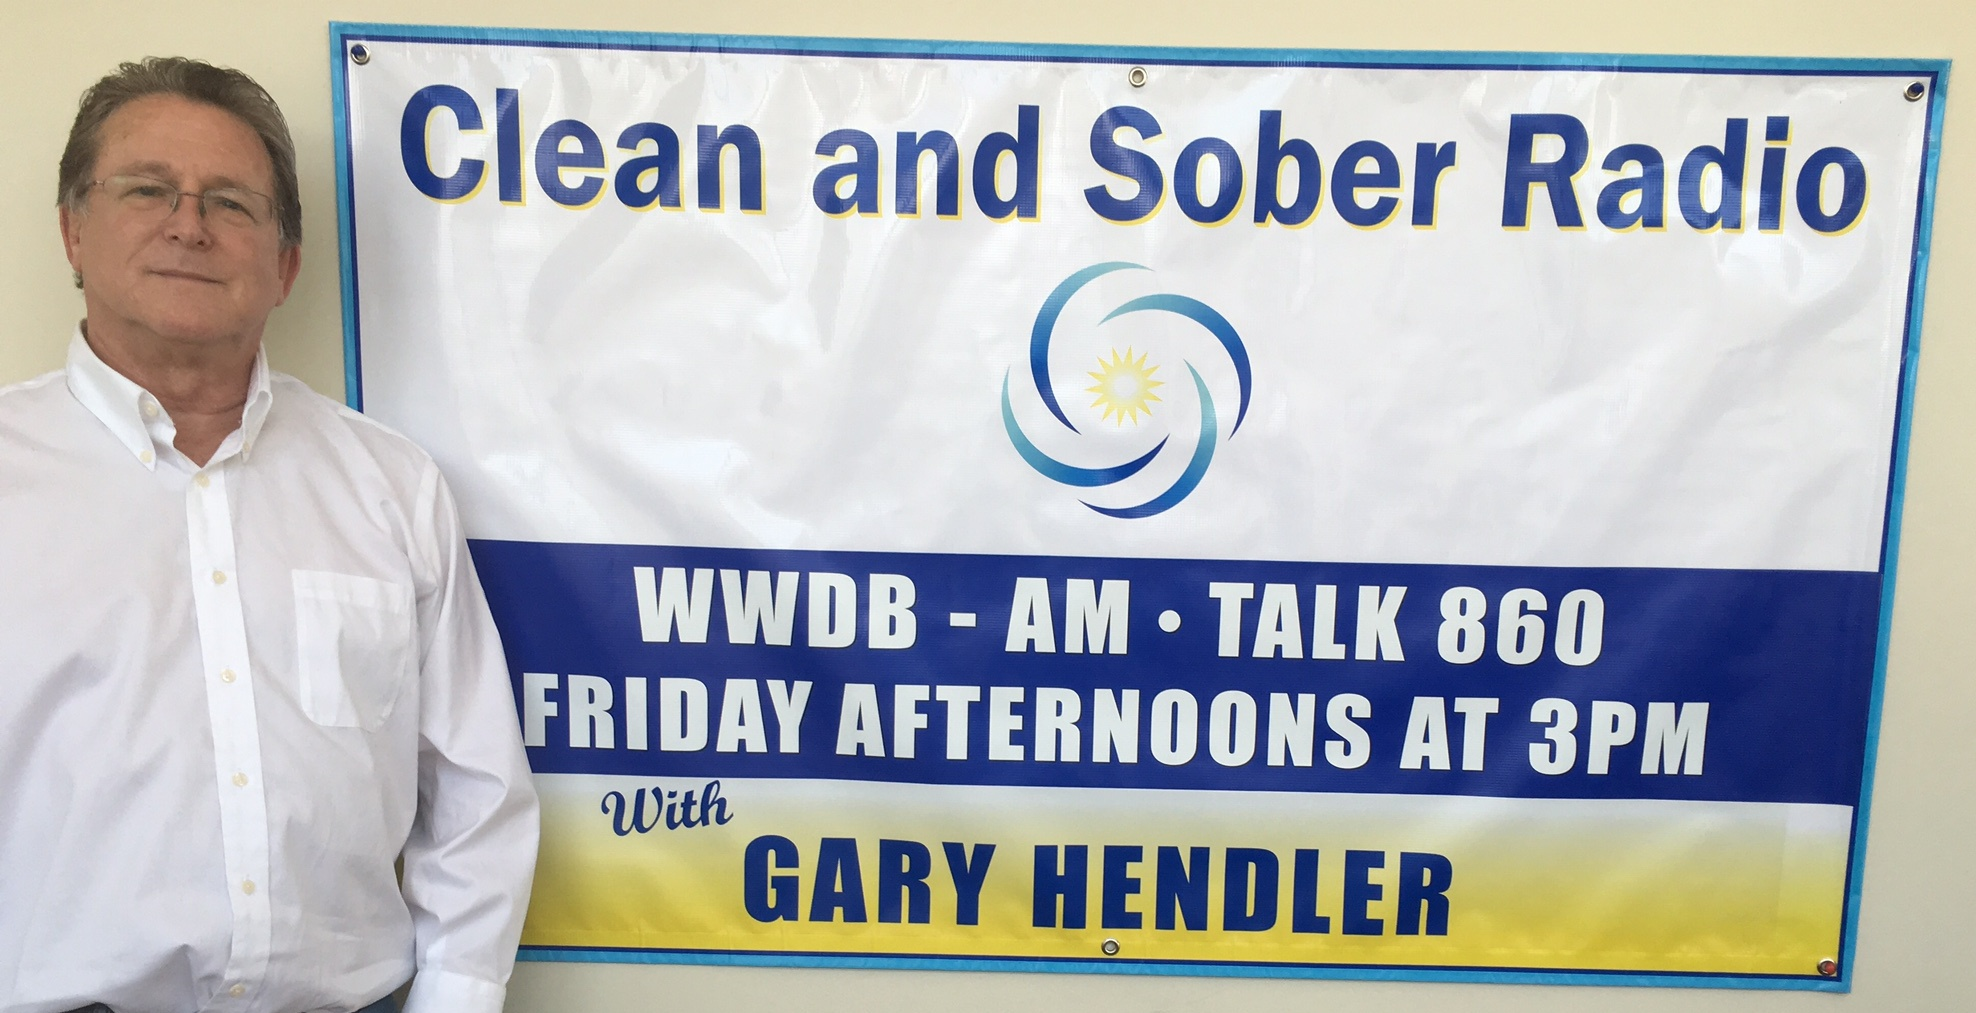 Gary Hendler - host of Clean and Sober Radio